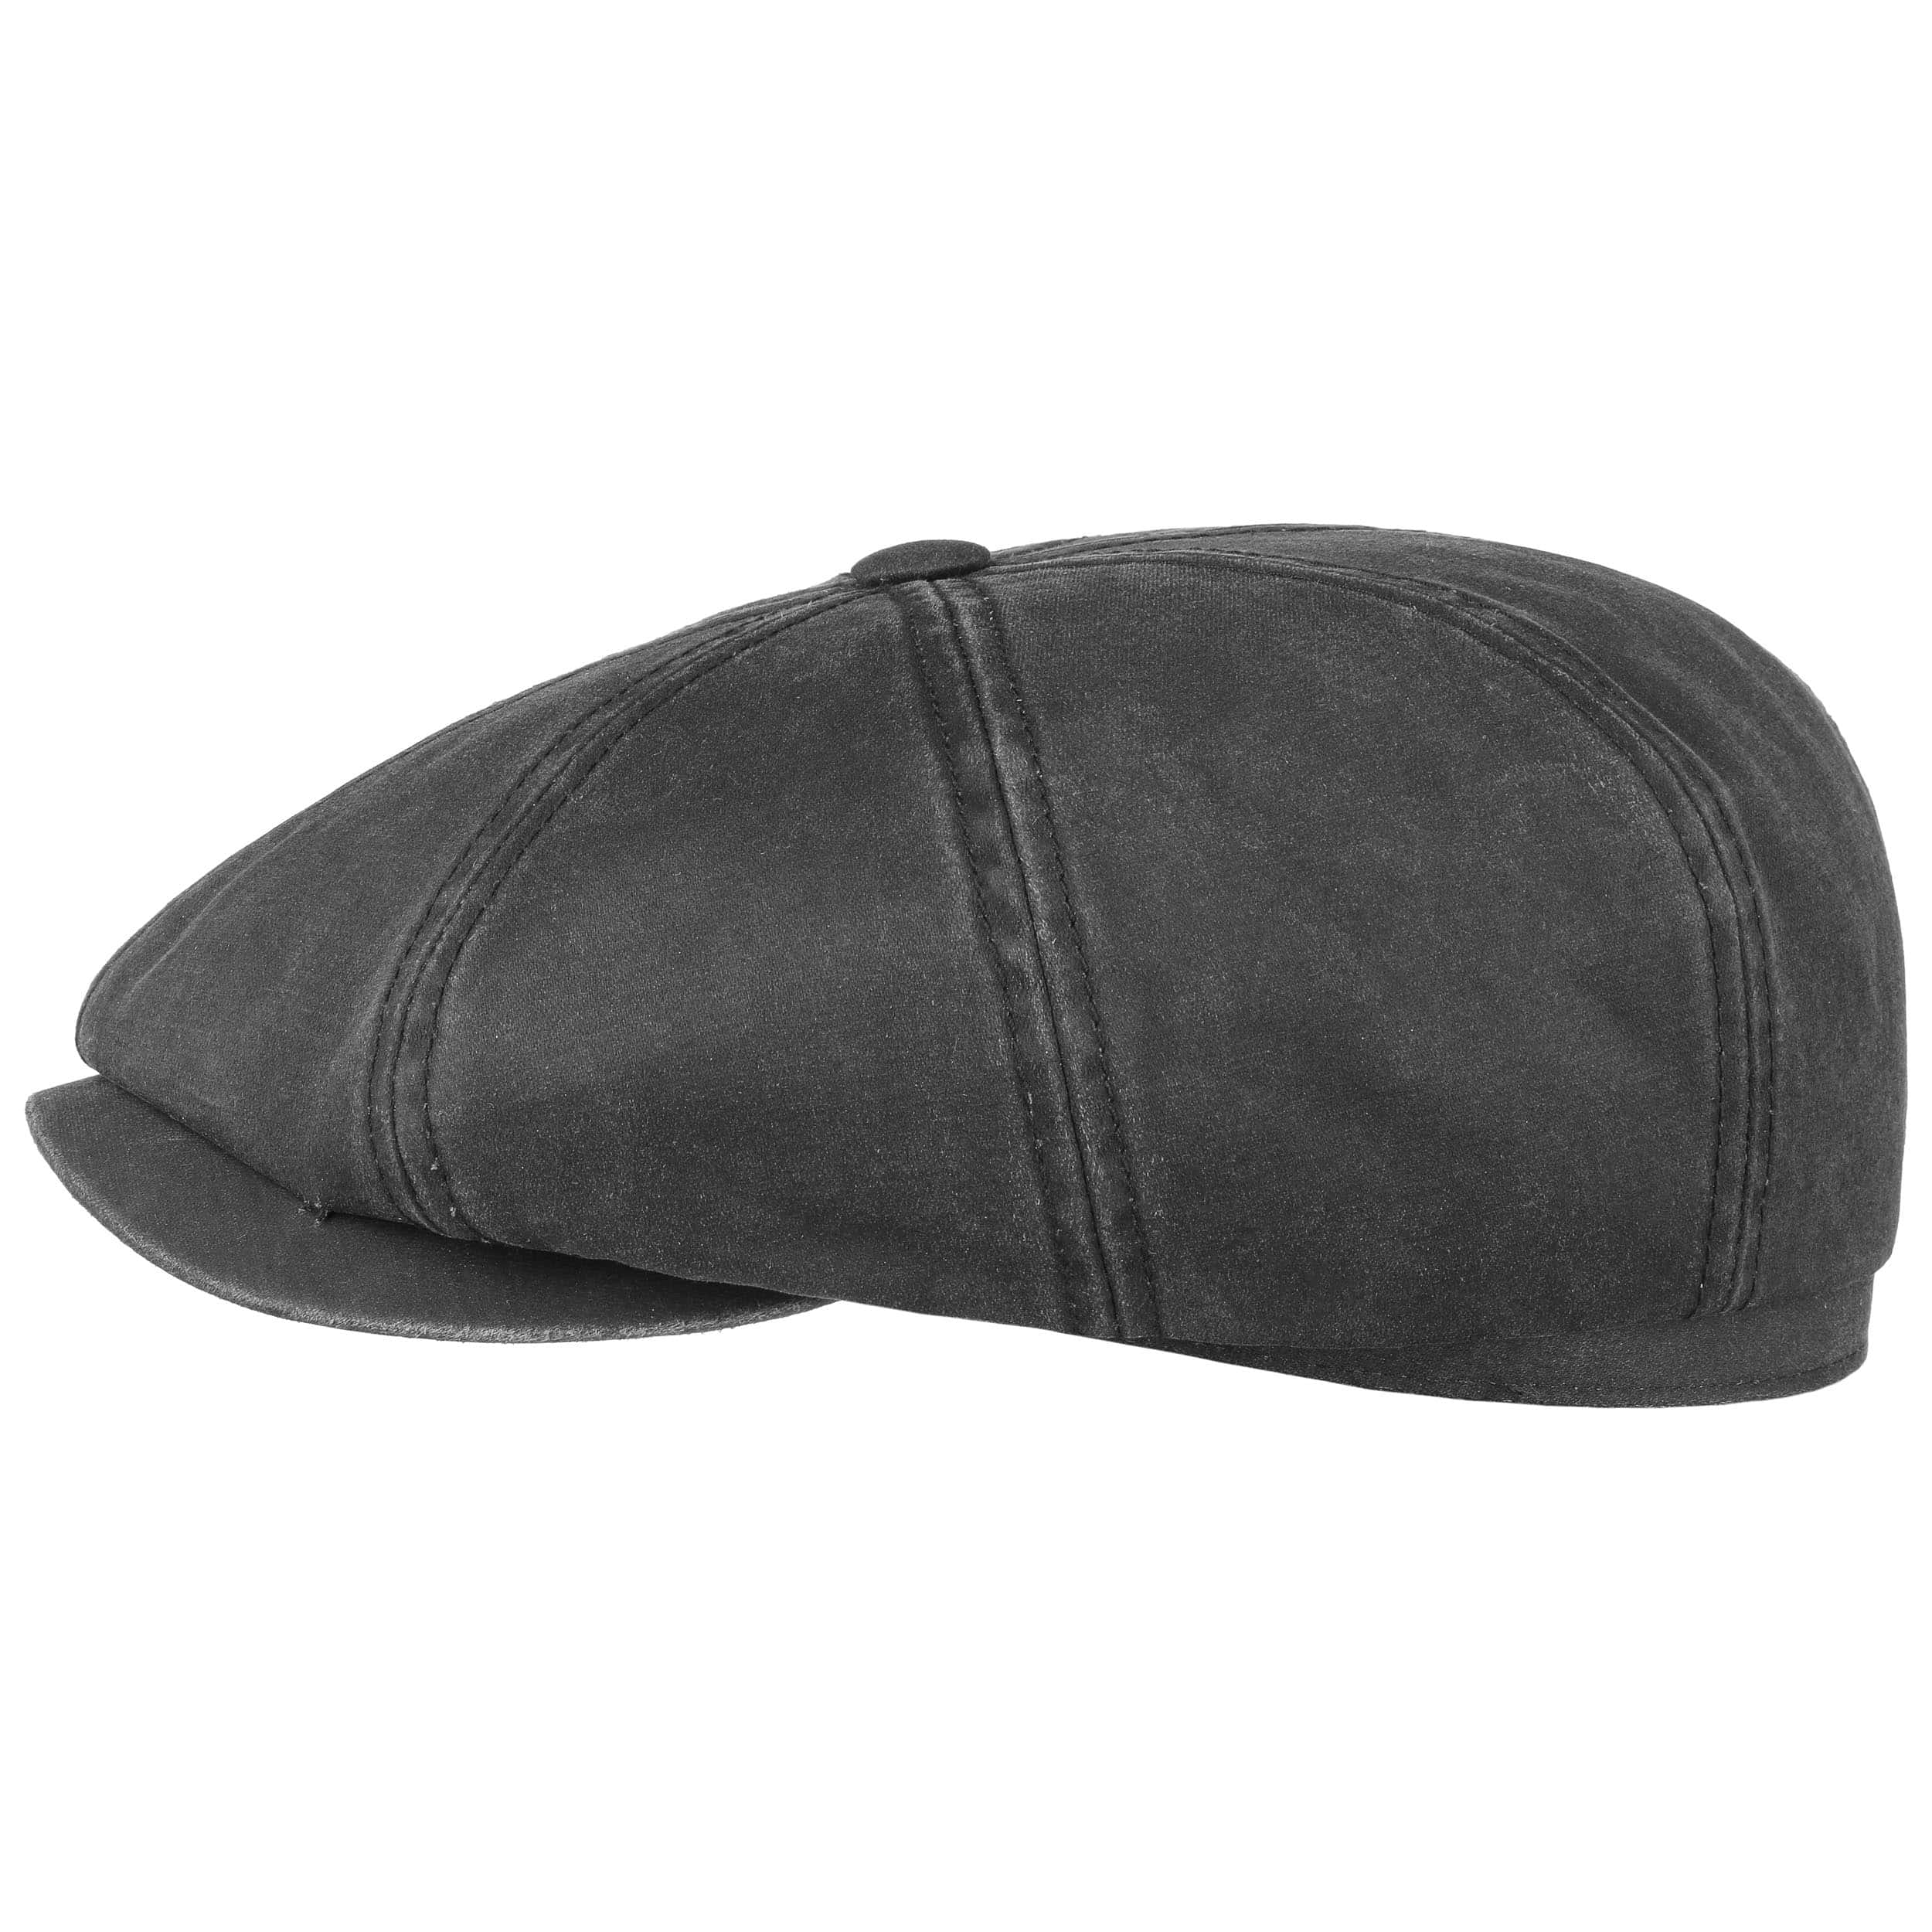 10f210043cb ... Hatteras Old Cotton Ear Flap Cap by Stetson - black 1 ...